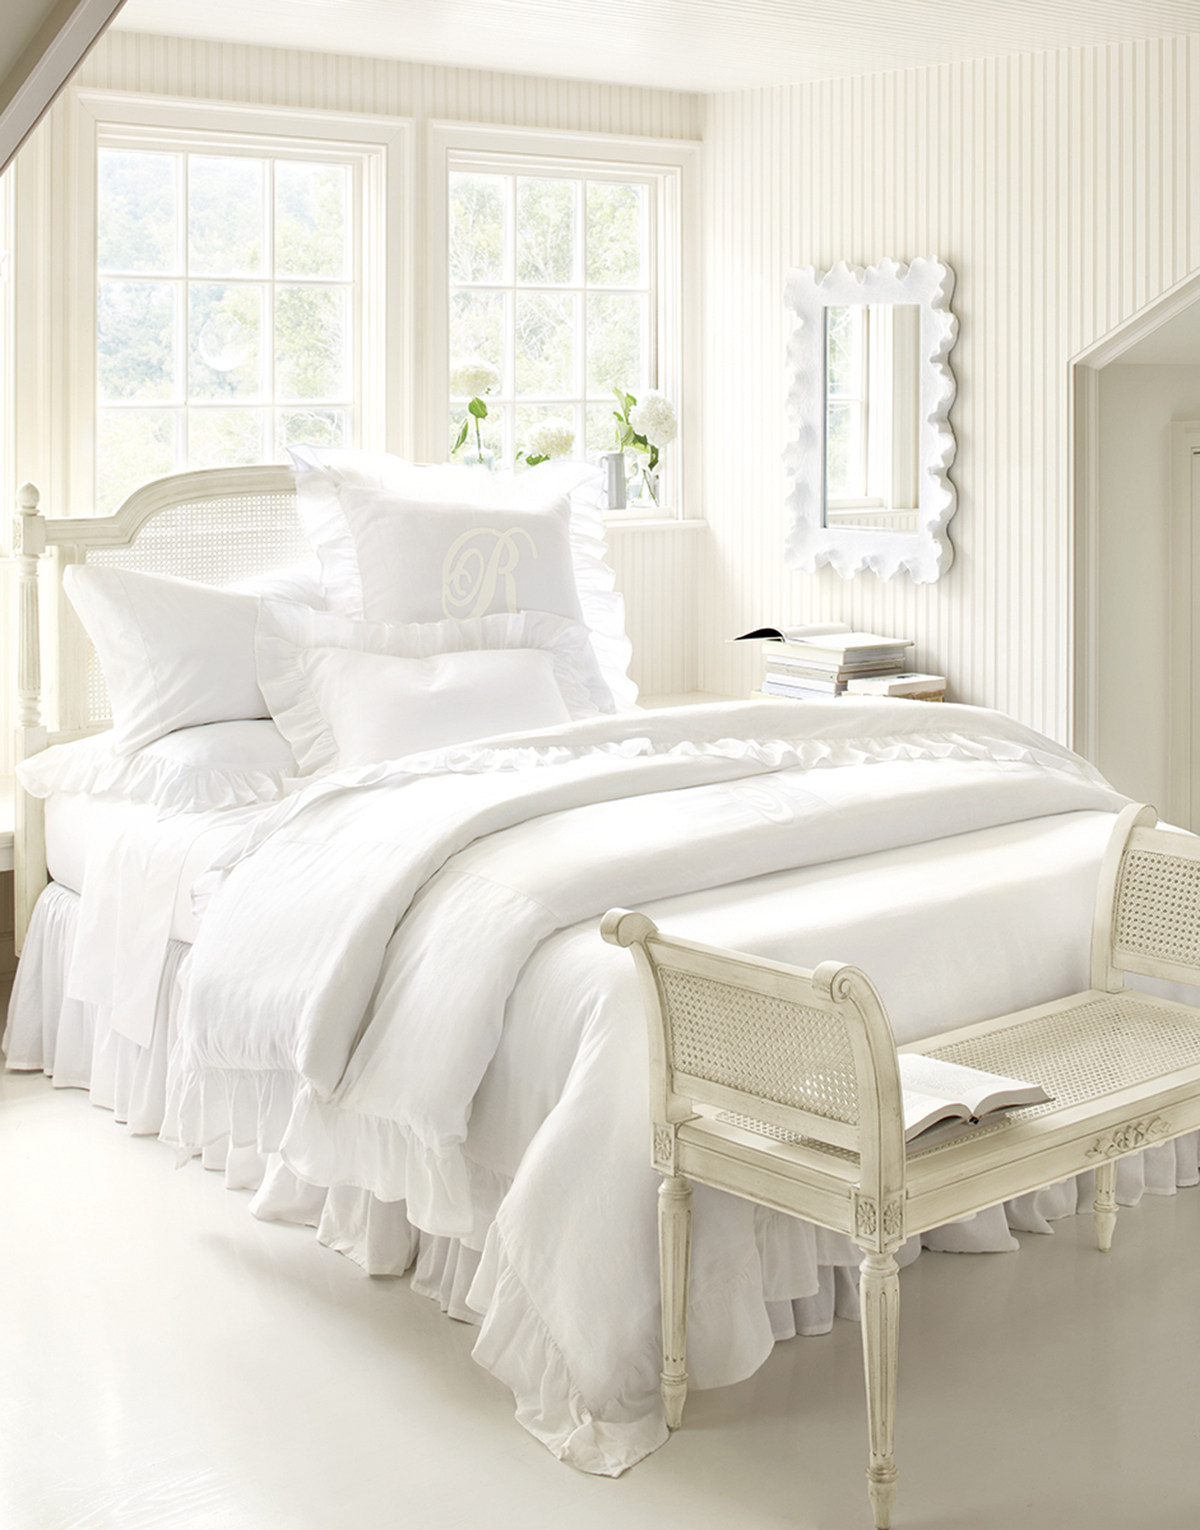 How to Decorate an All White Bedroom